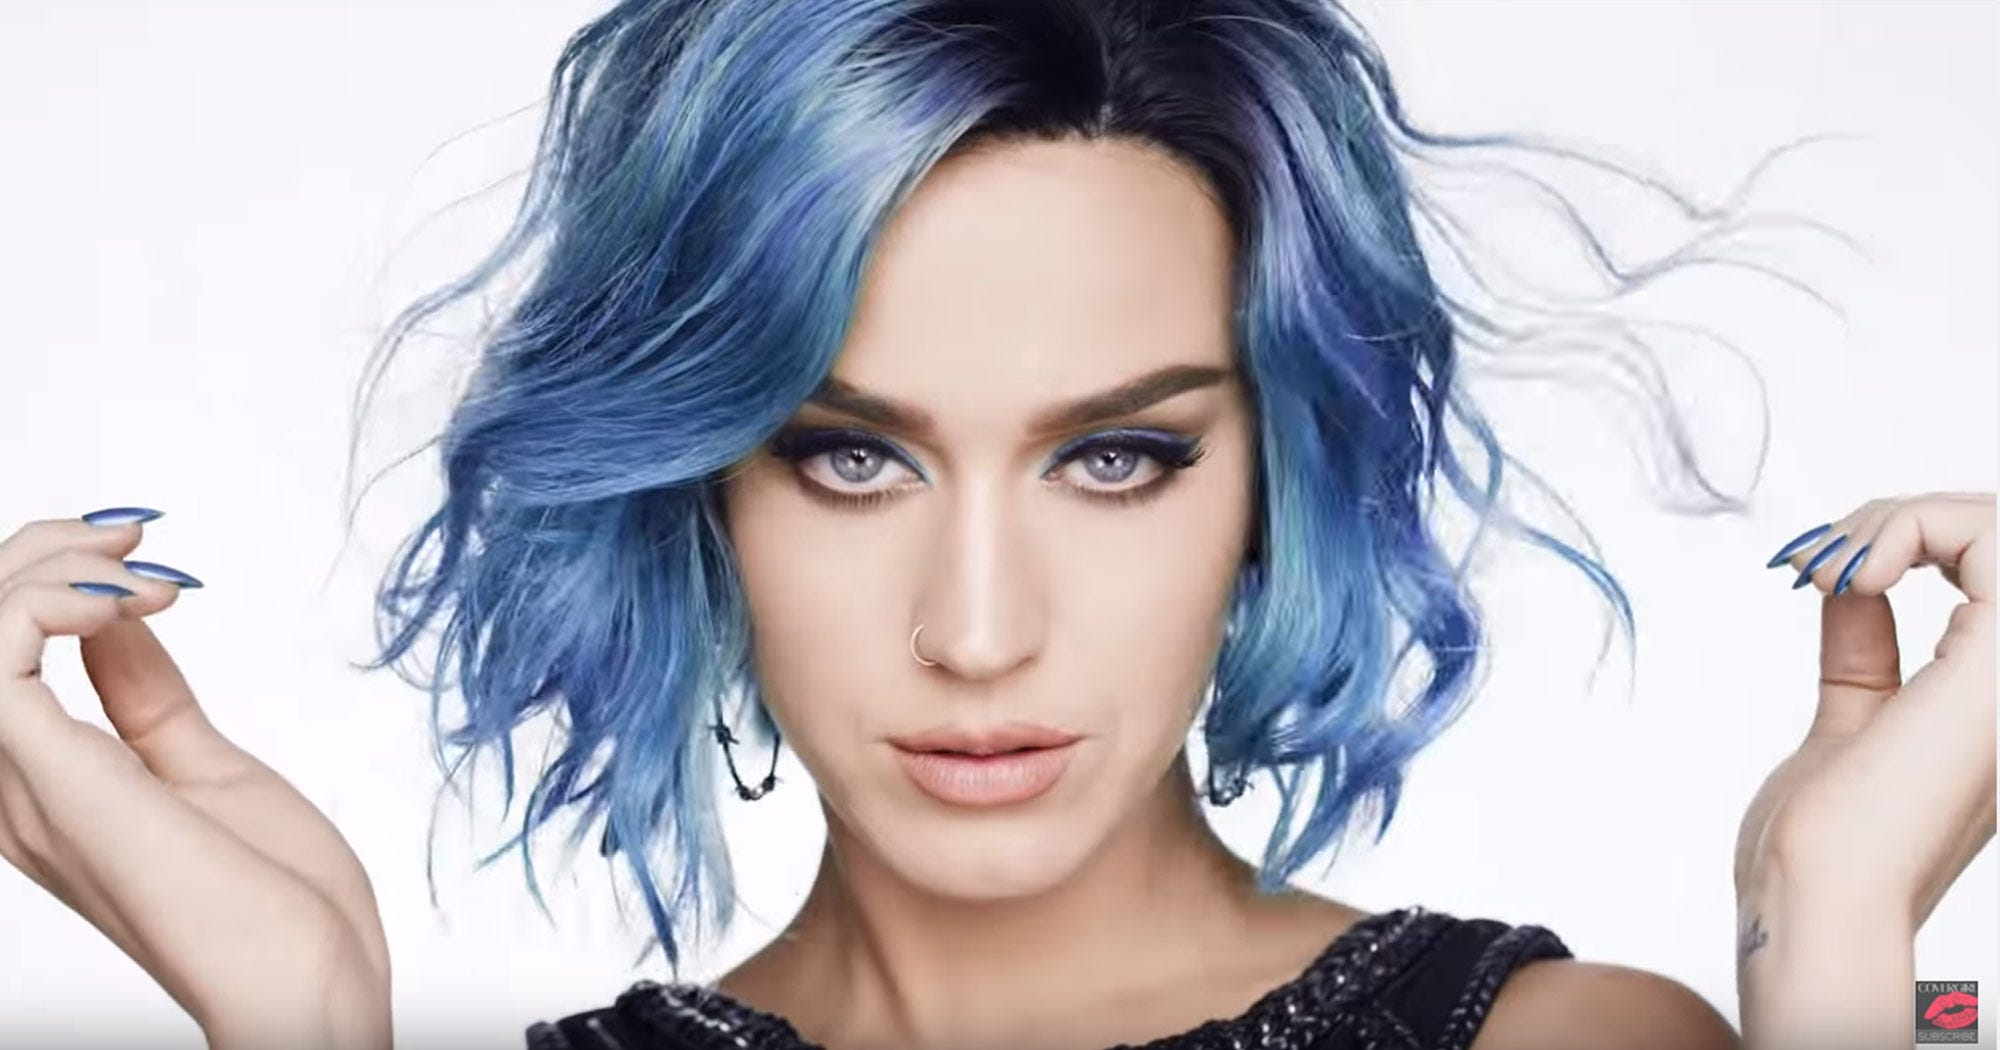 blue hair style blue hair color personal style 3169 | image